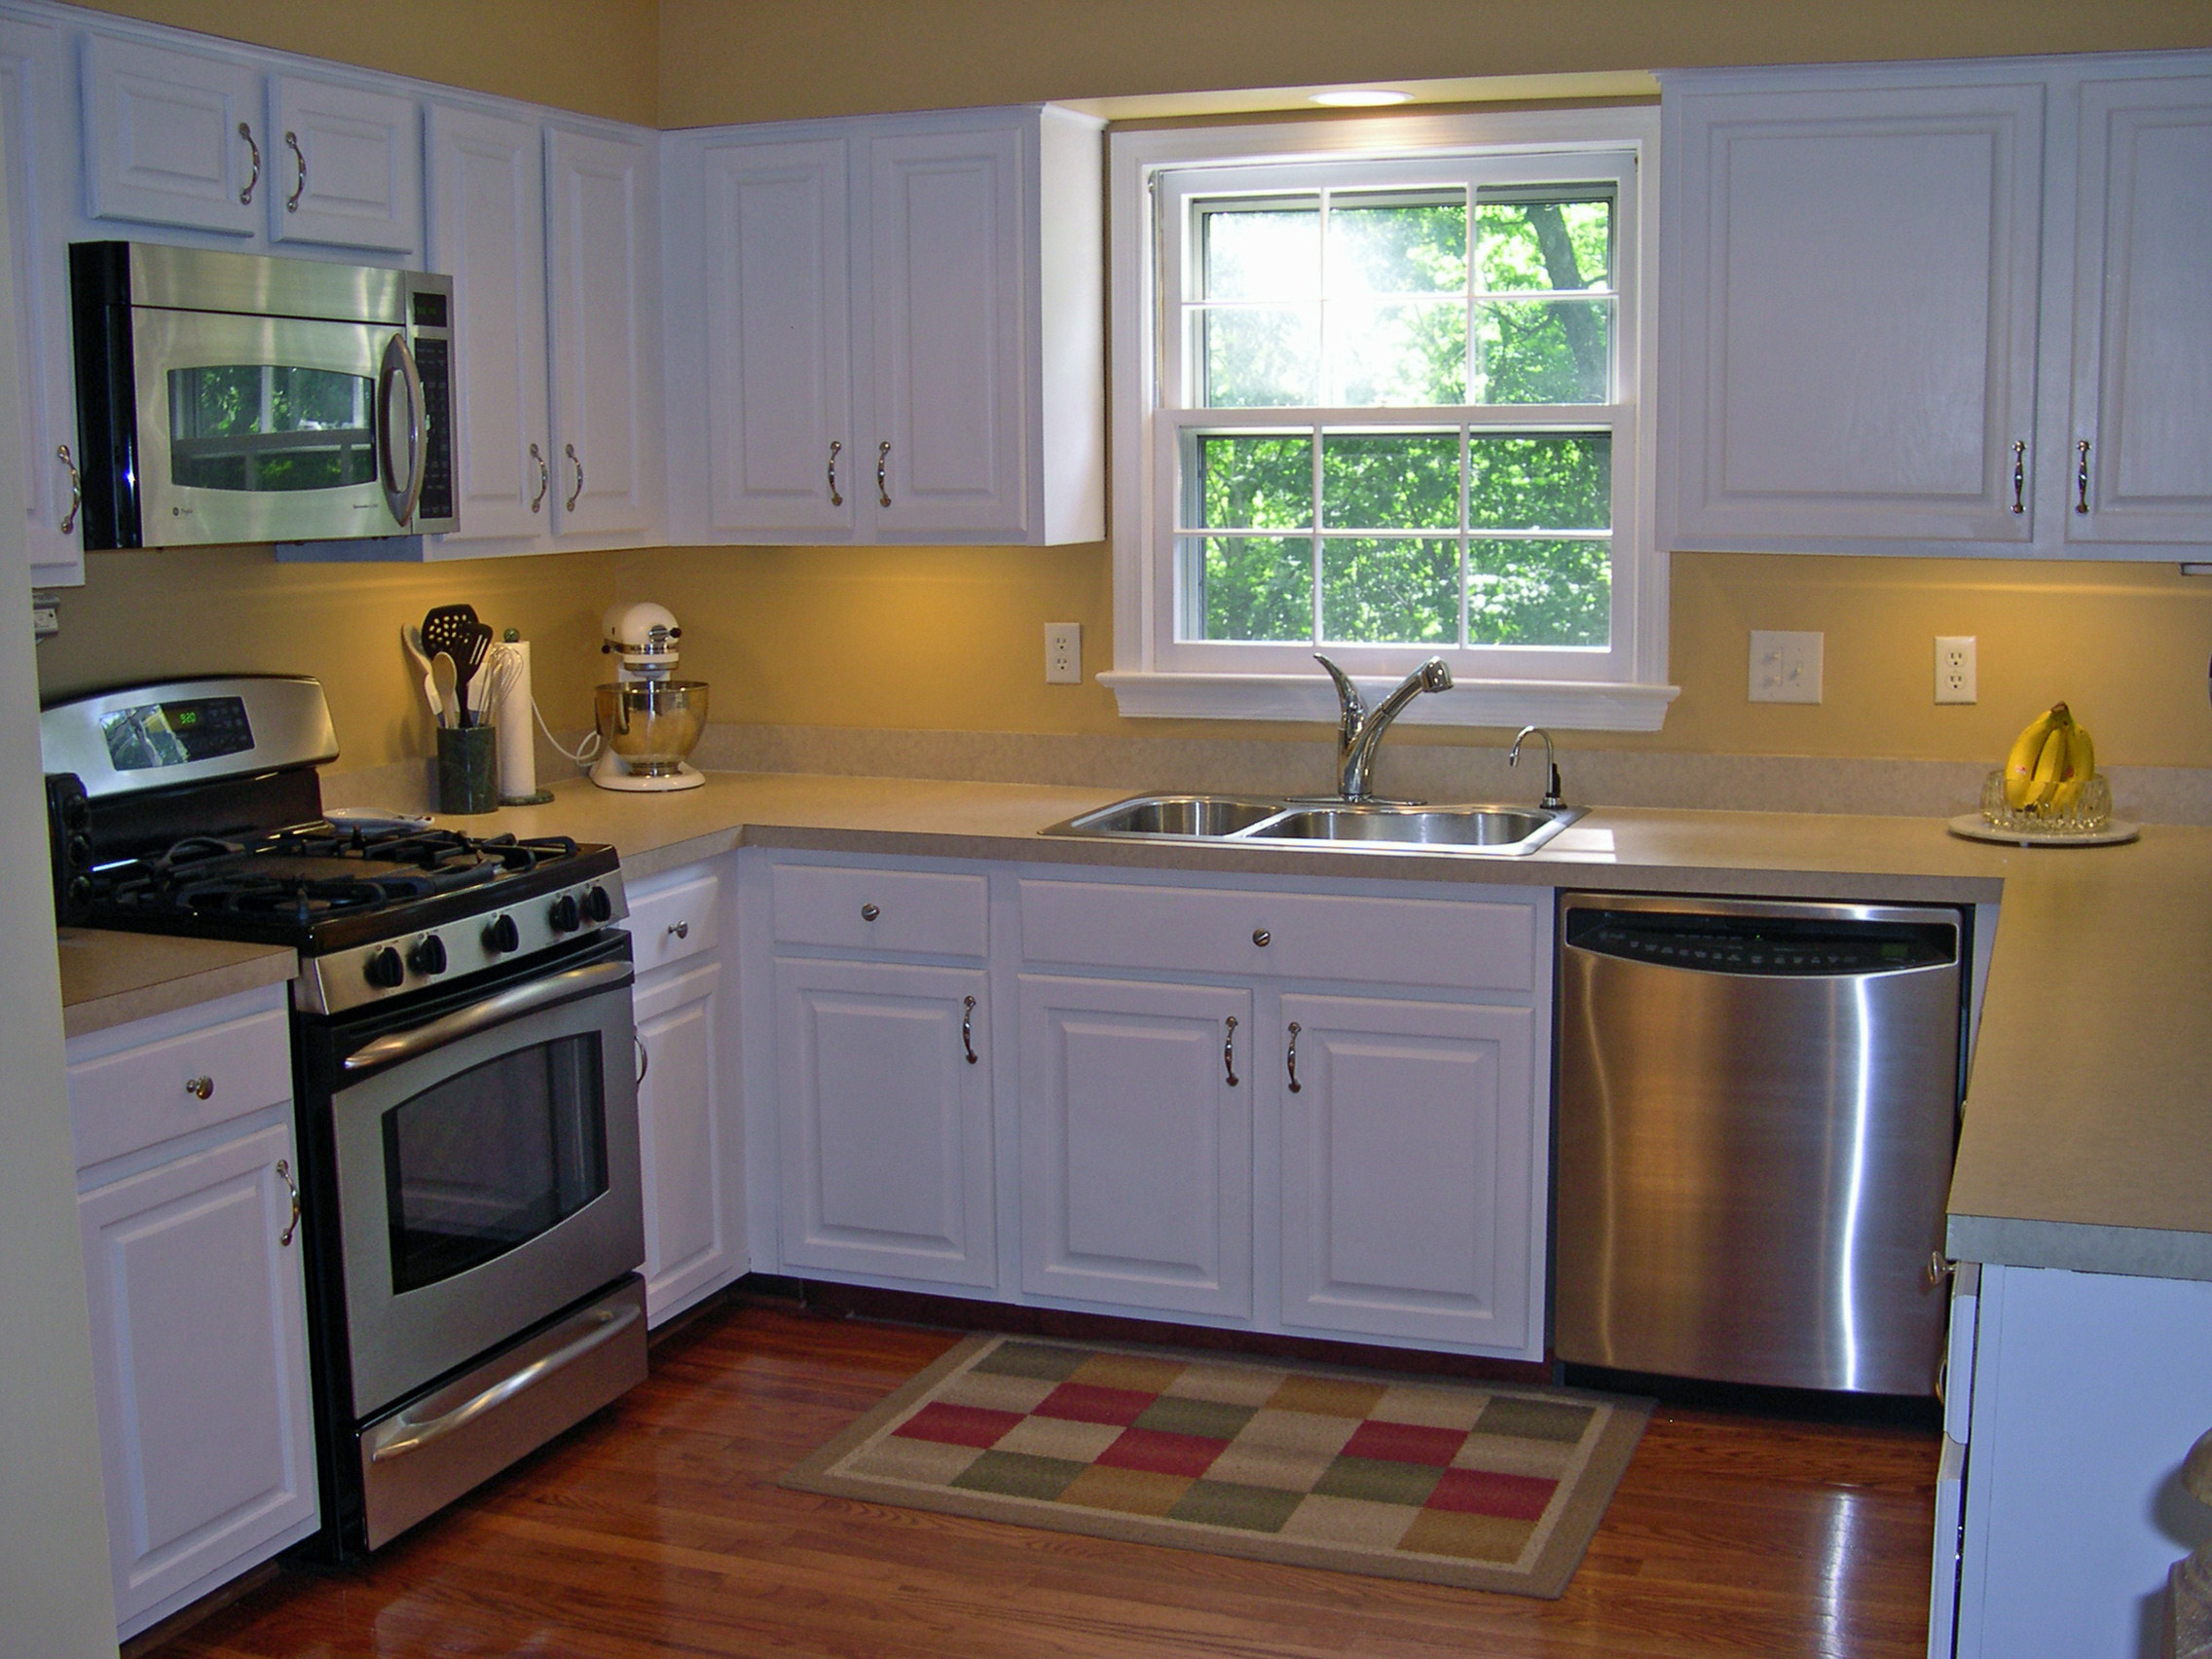 small kitchen remodel pictures photo - 1